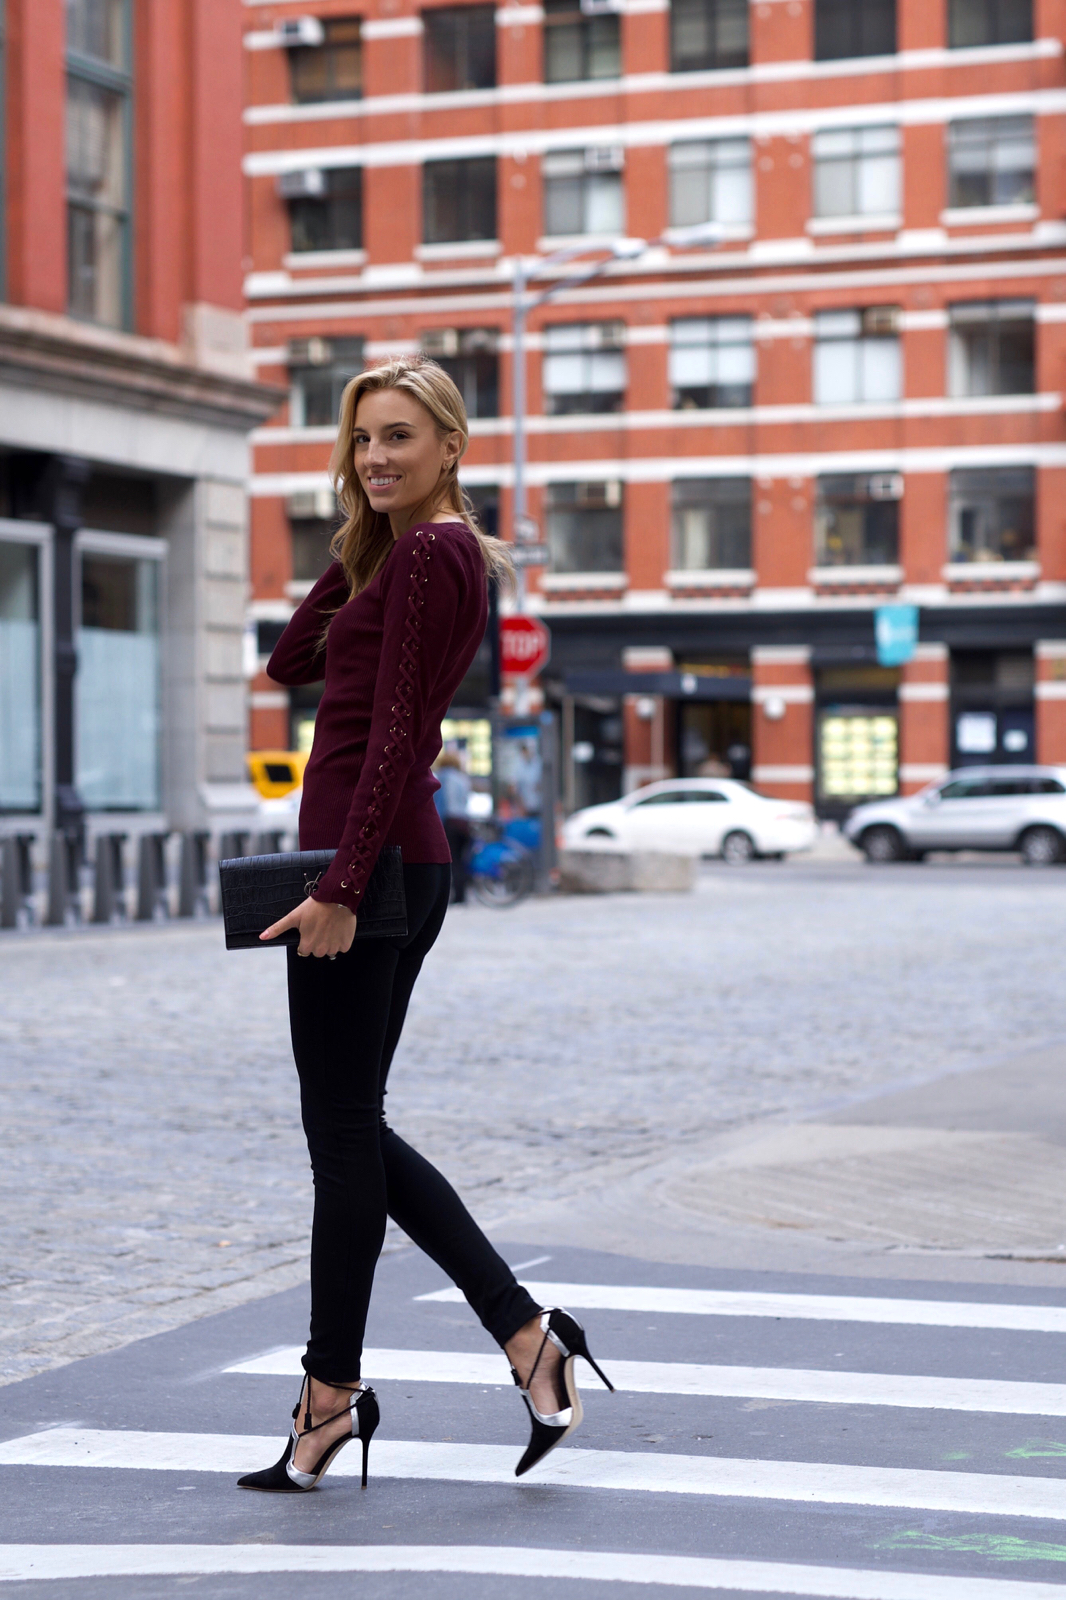 inc-outfit-ideas-for-holiday-parties-1-of-1